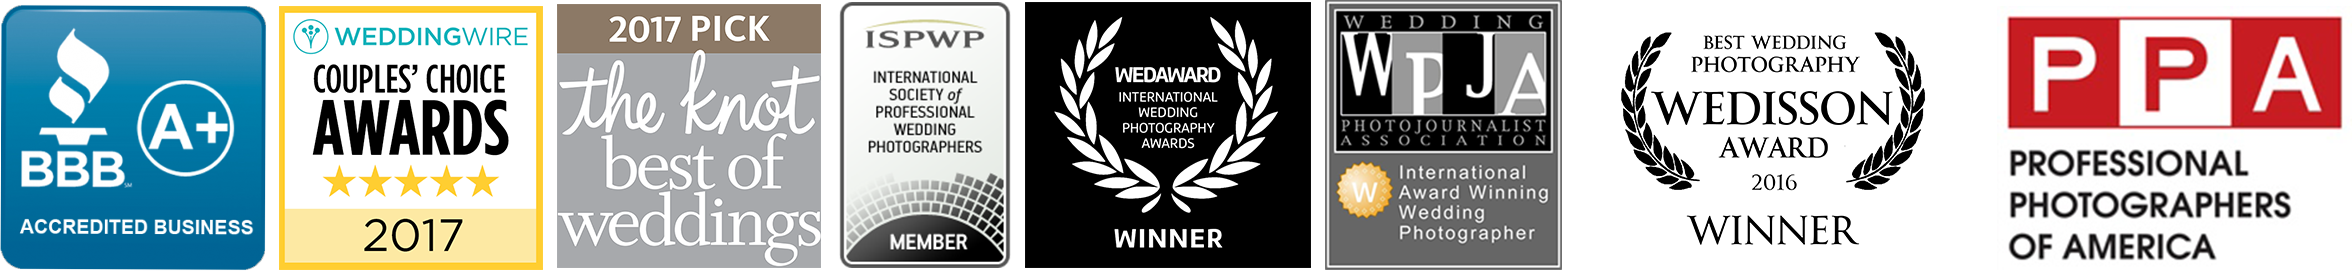 Hire an experienced, award winning and trusted wedding photographer!